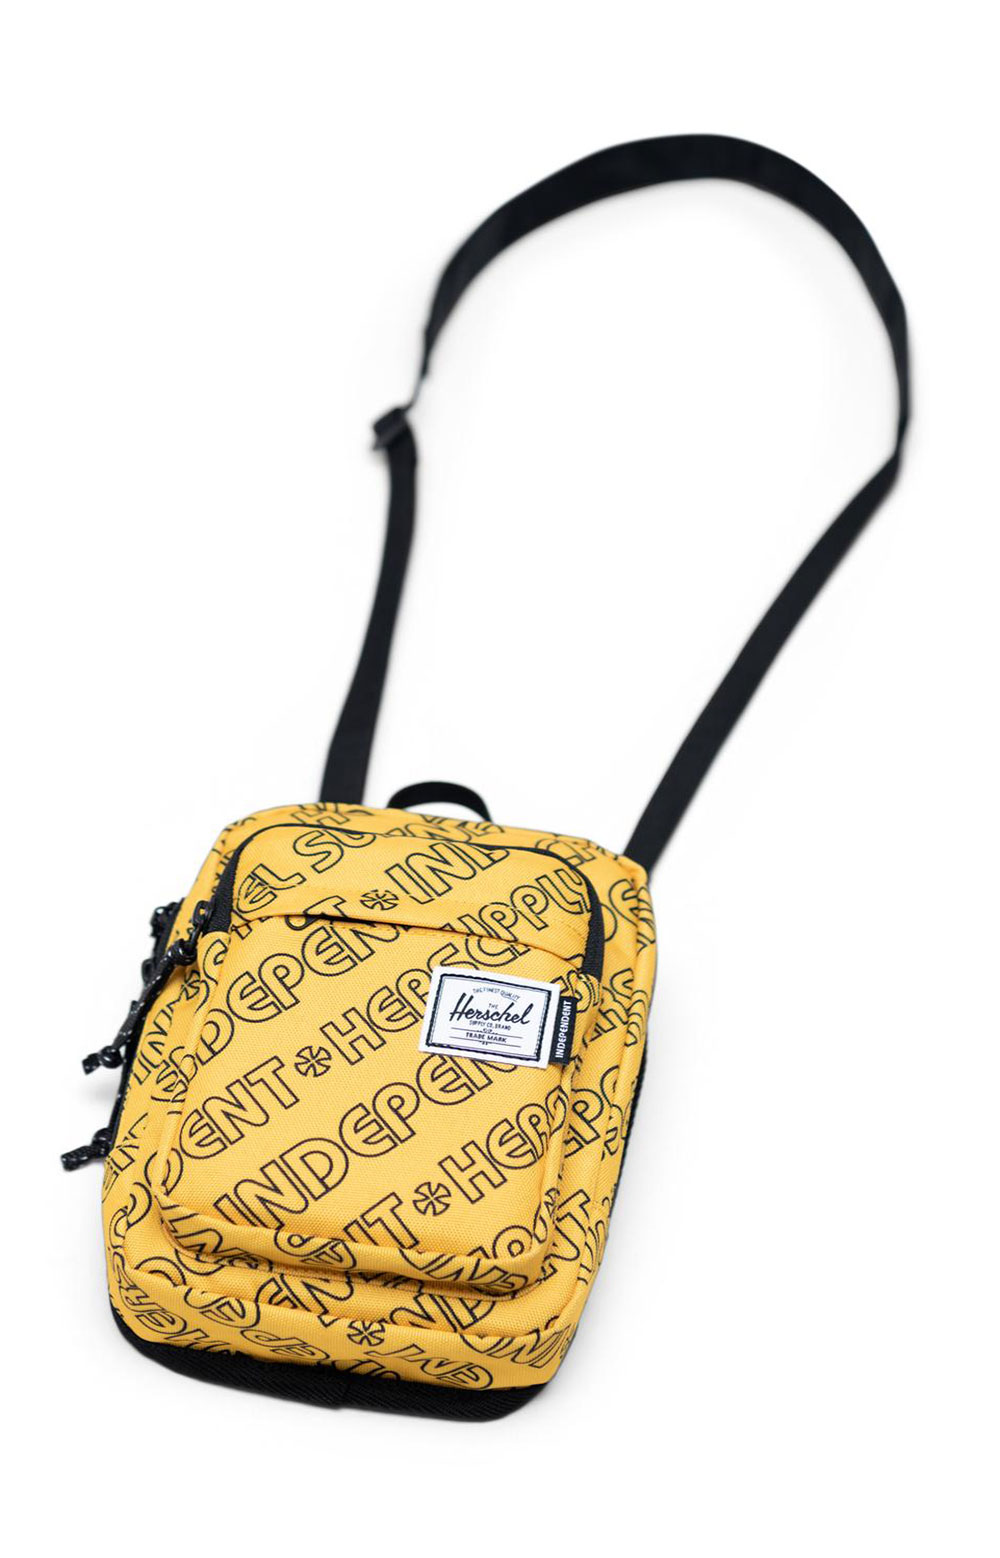 Form L Crossbody Bag - Independent Unified Yellow 2